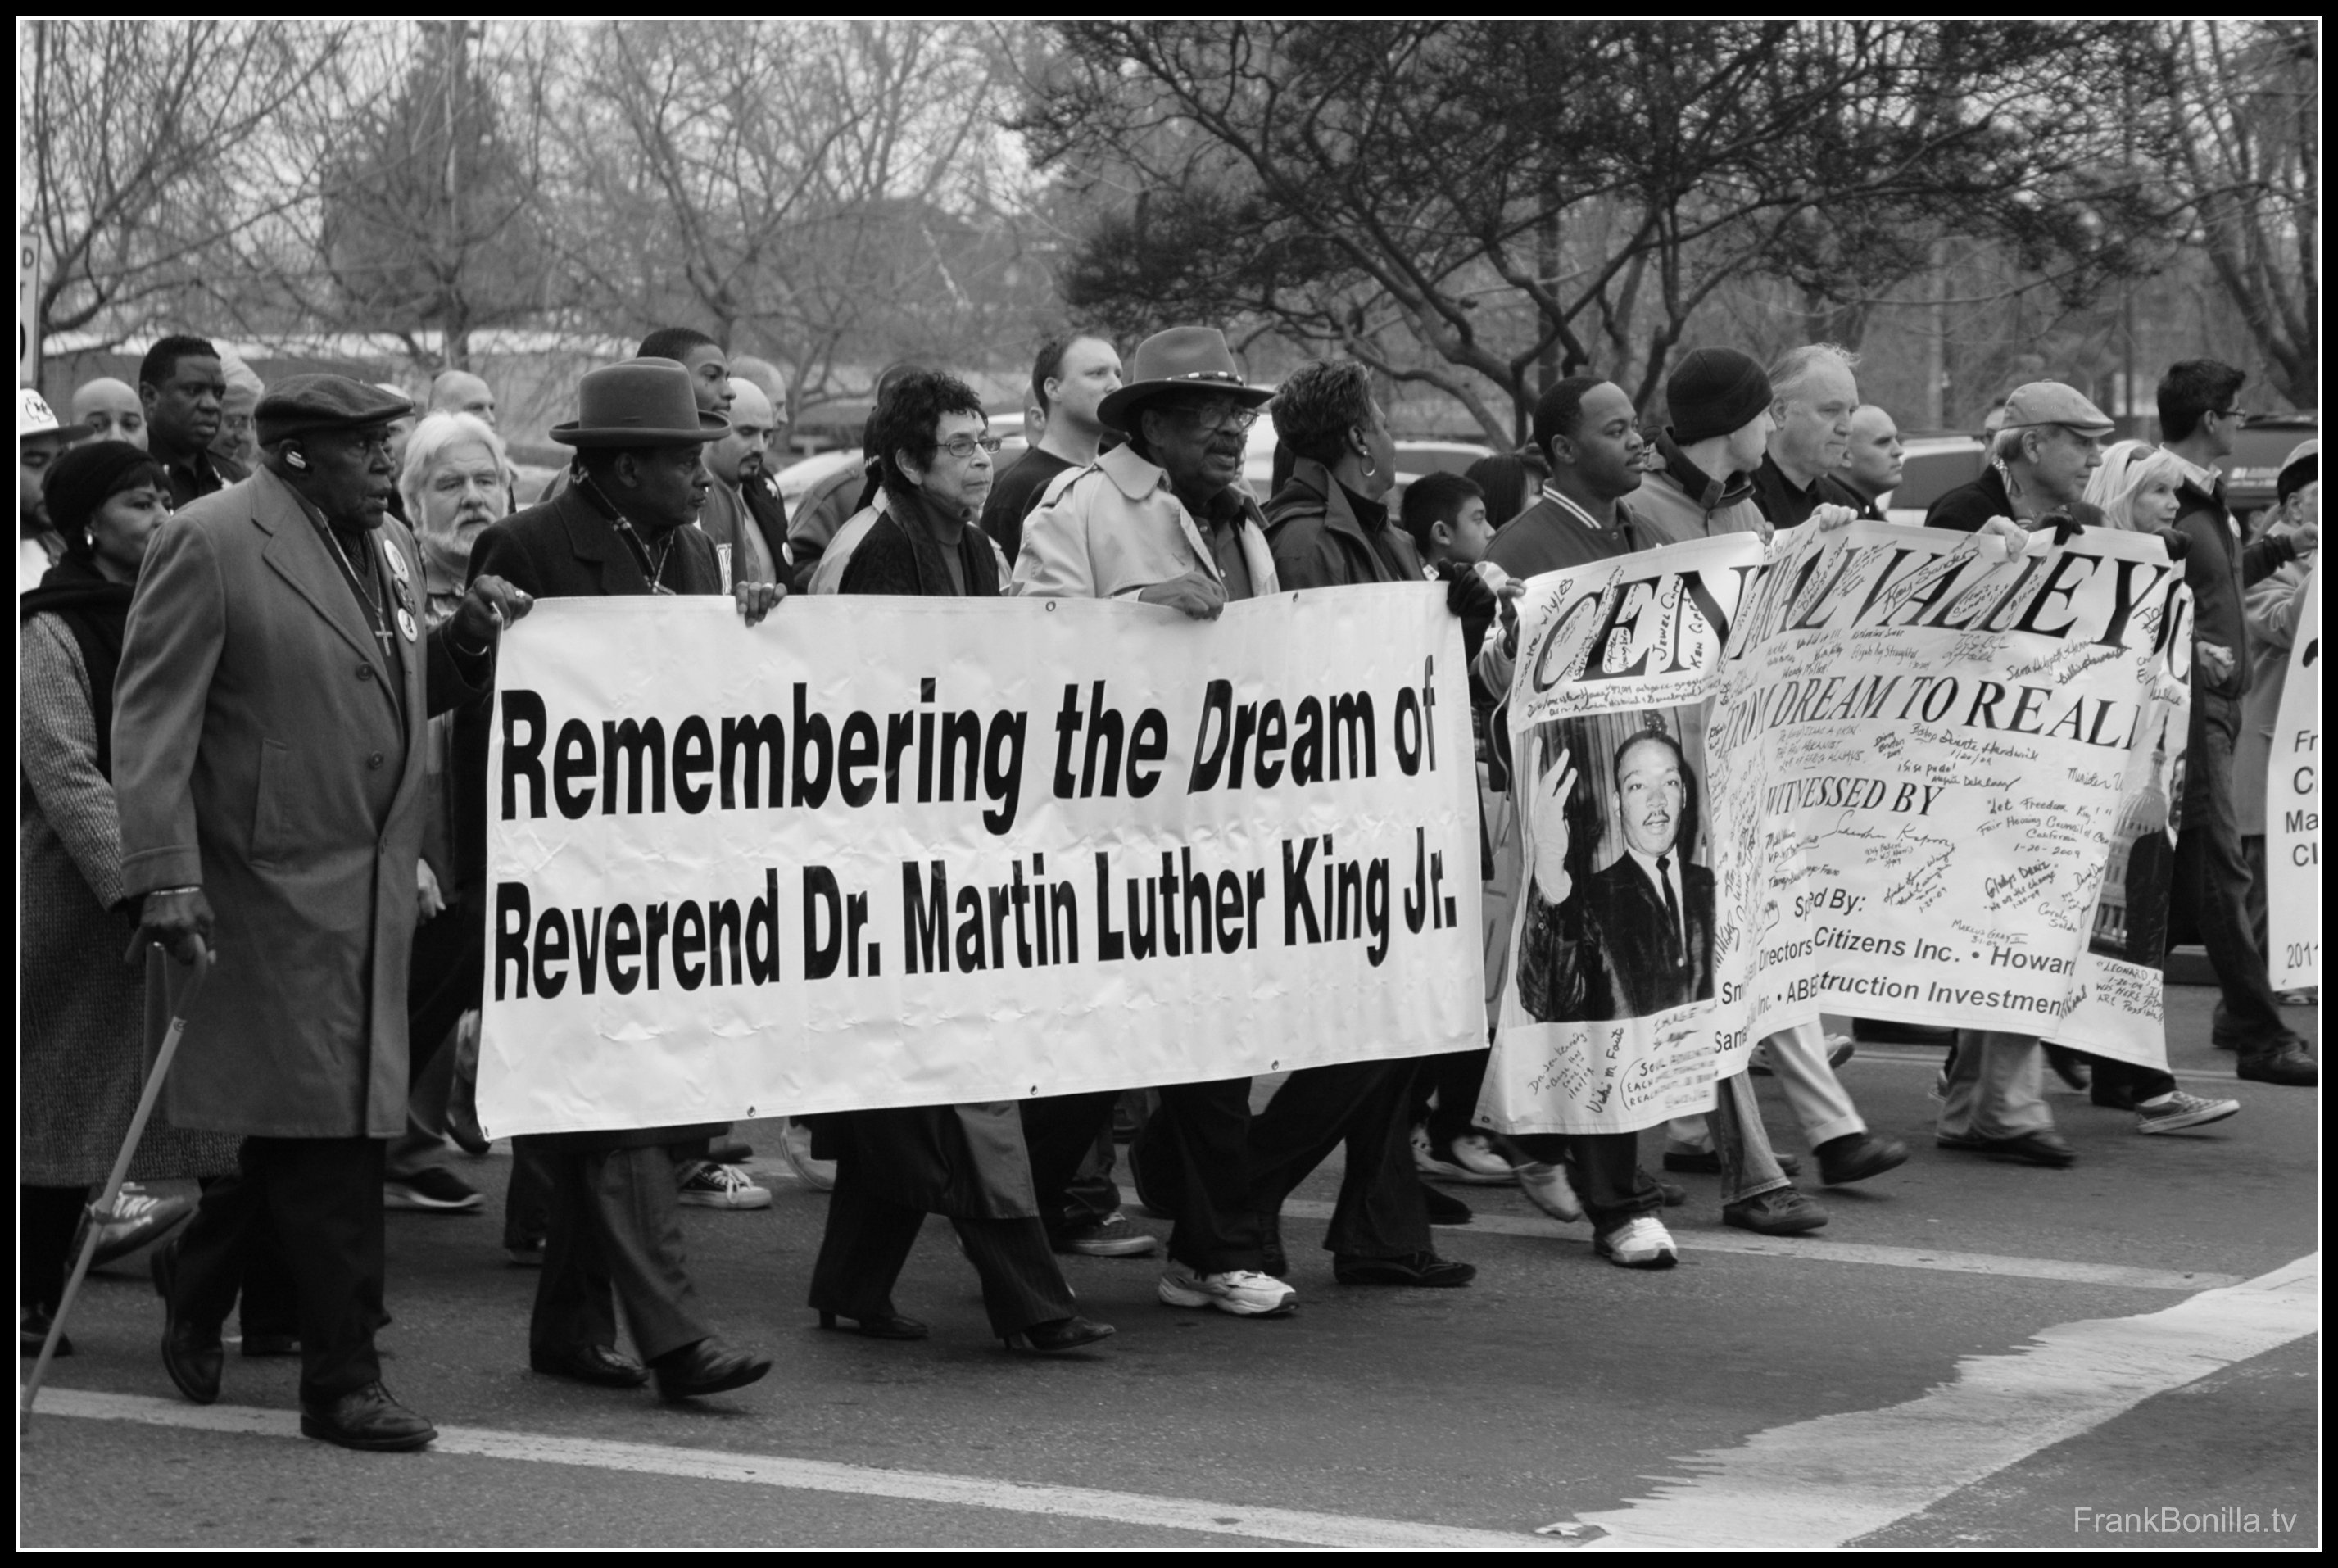 Remember Dr. Martin Luther King Jr.